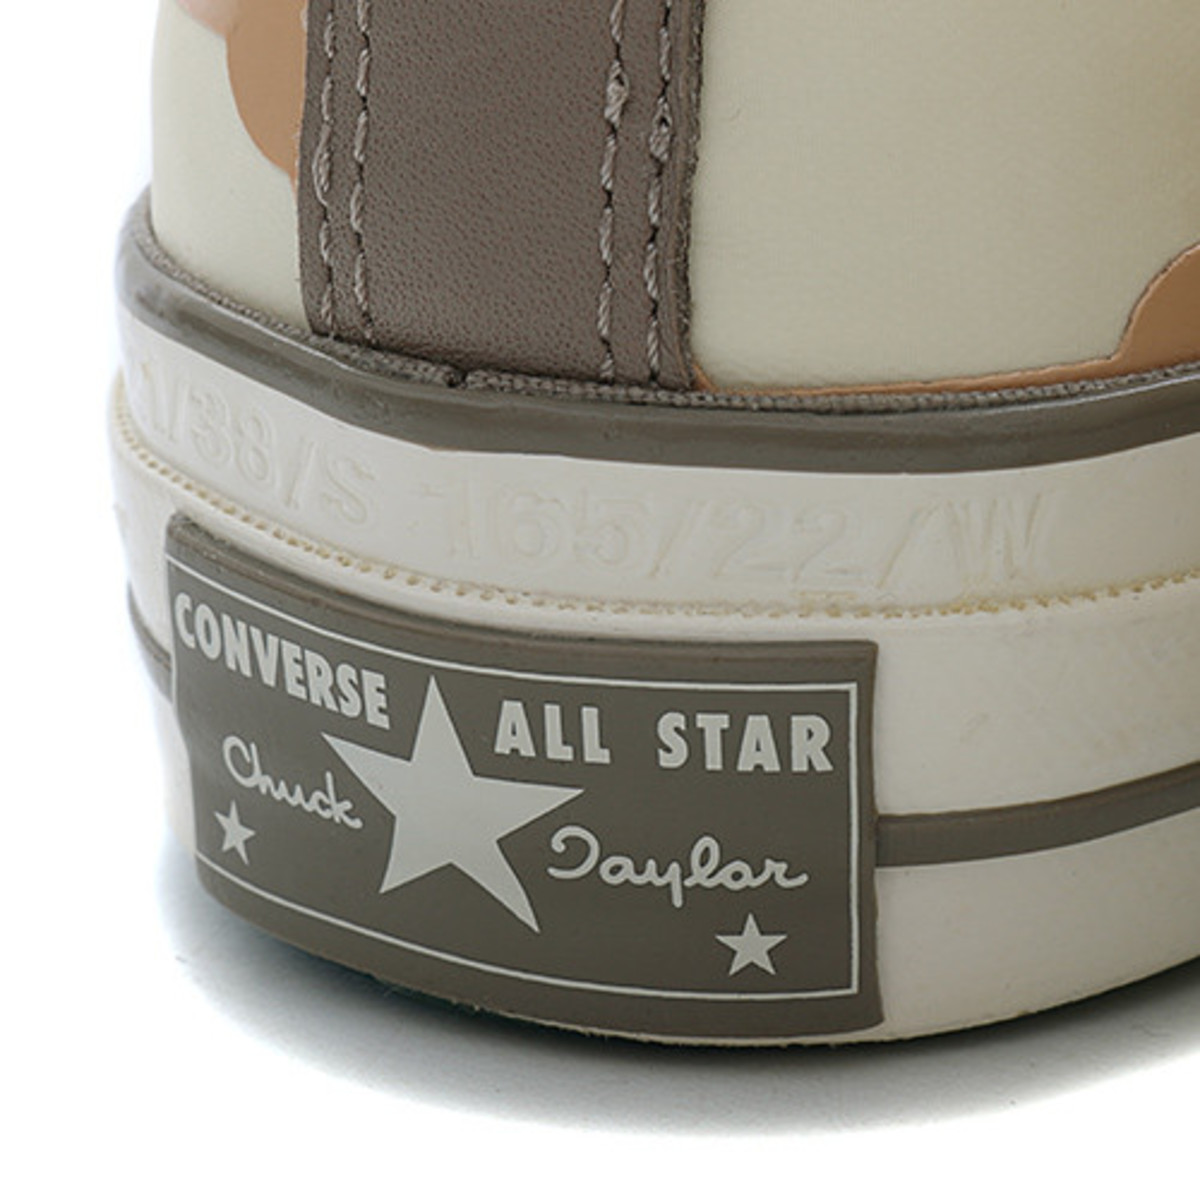 9d3fc4c5edf4 Men s CONVERSE FIRST STRING CHUCK TAYLOR ALL STAR 70 S SPACE PACK ...